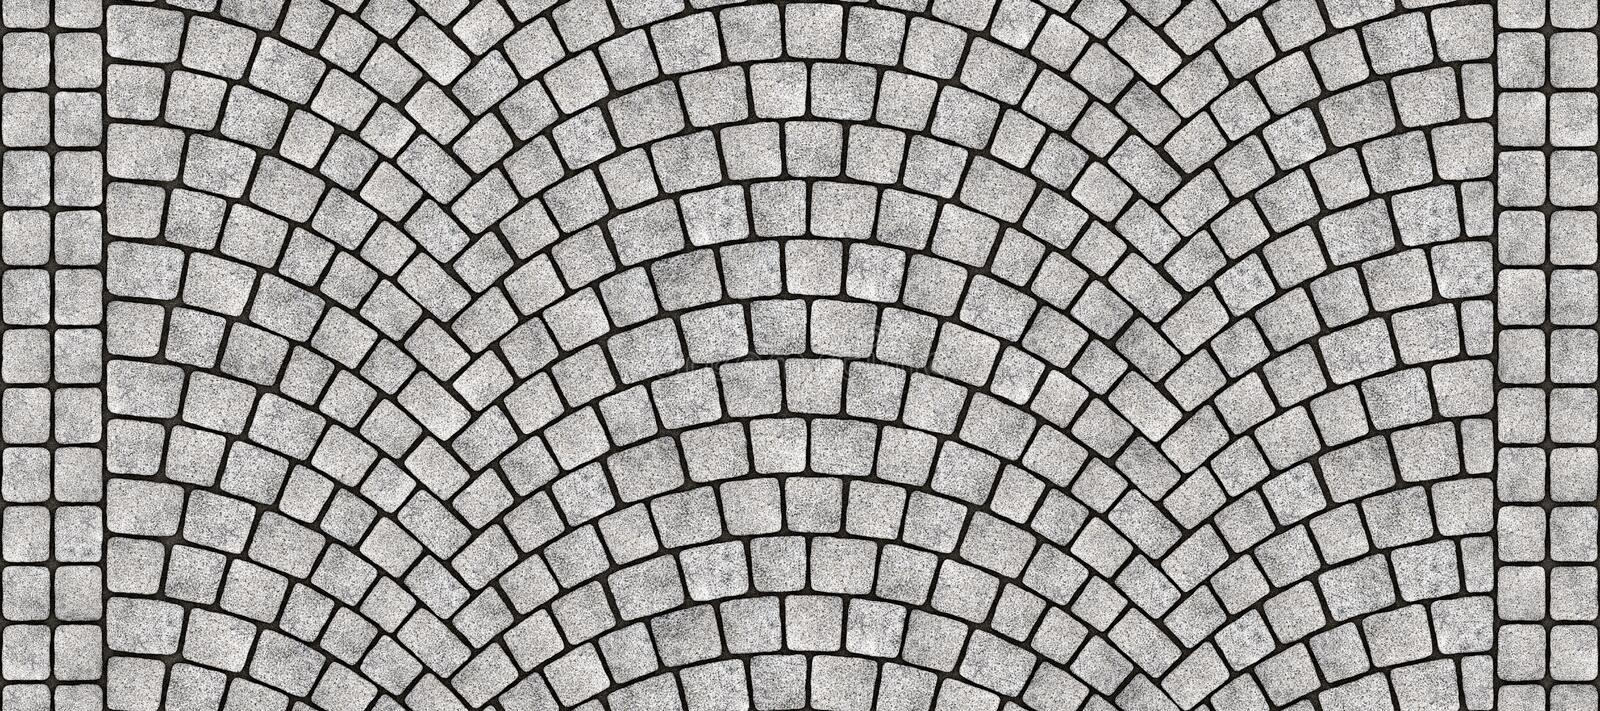 Road curved cobblestone texture 072. Cobblestone arched pavement road with edge courses at the sidewalk. Seamless tileable repeating 3D rendering texture royalty free illustration